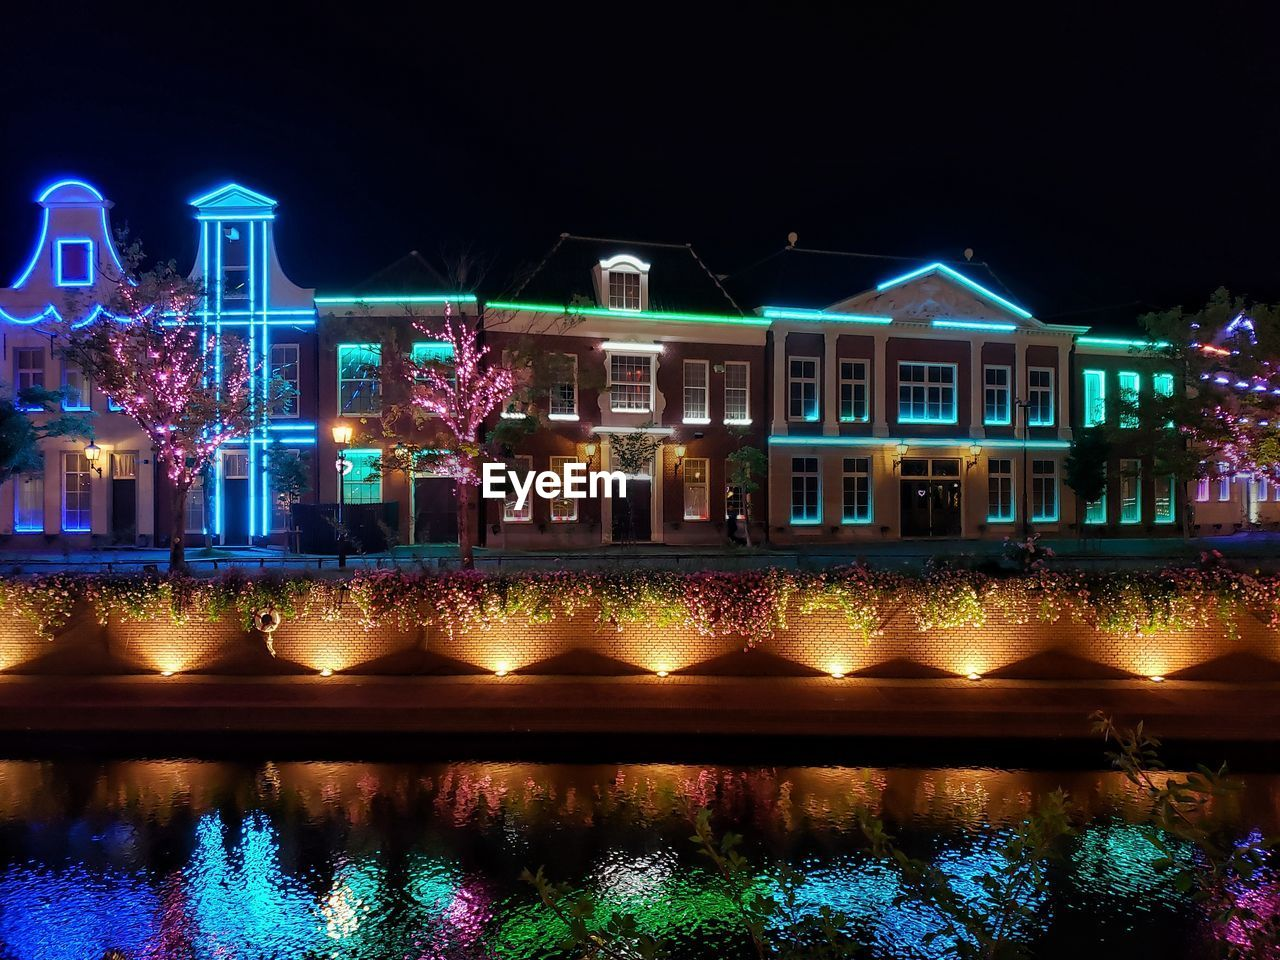 night, built structure, architecture, building exterior, water, building, illuminated, reflection, waterfront, no people, nature, lighting equipment, residential district, glowing, sky, city, multi colored, house, outdoors, canal, swimming pool, luxury